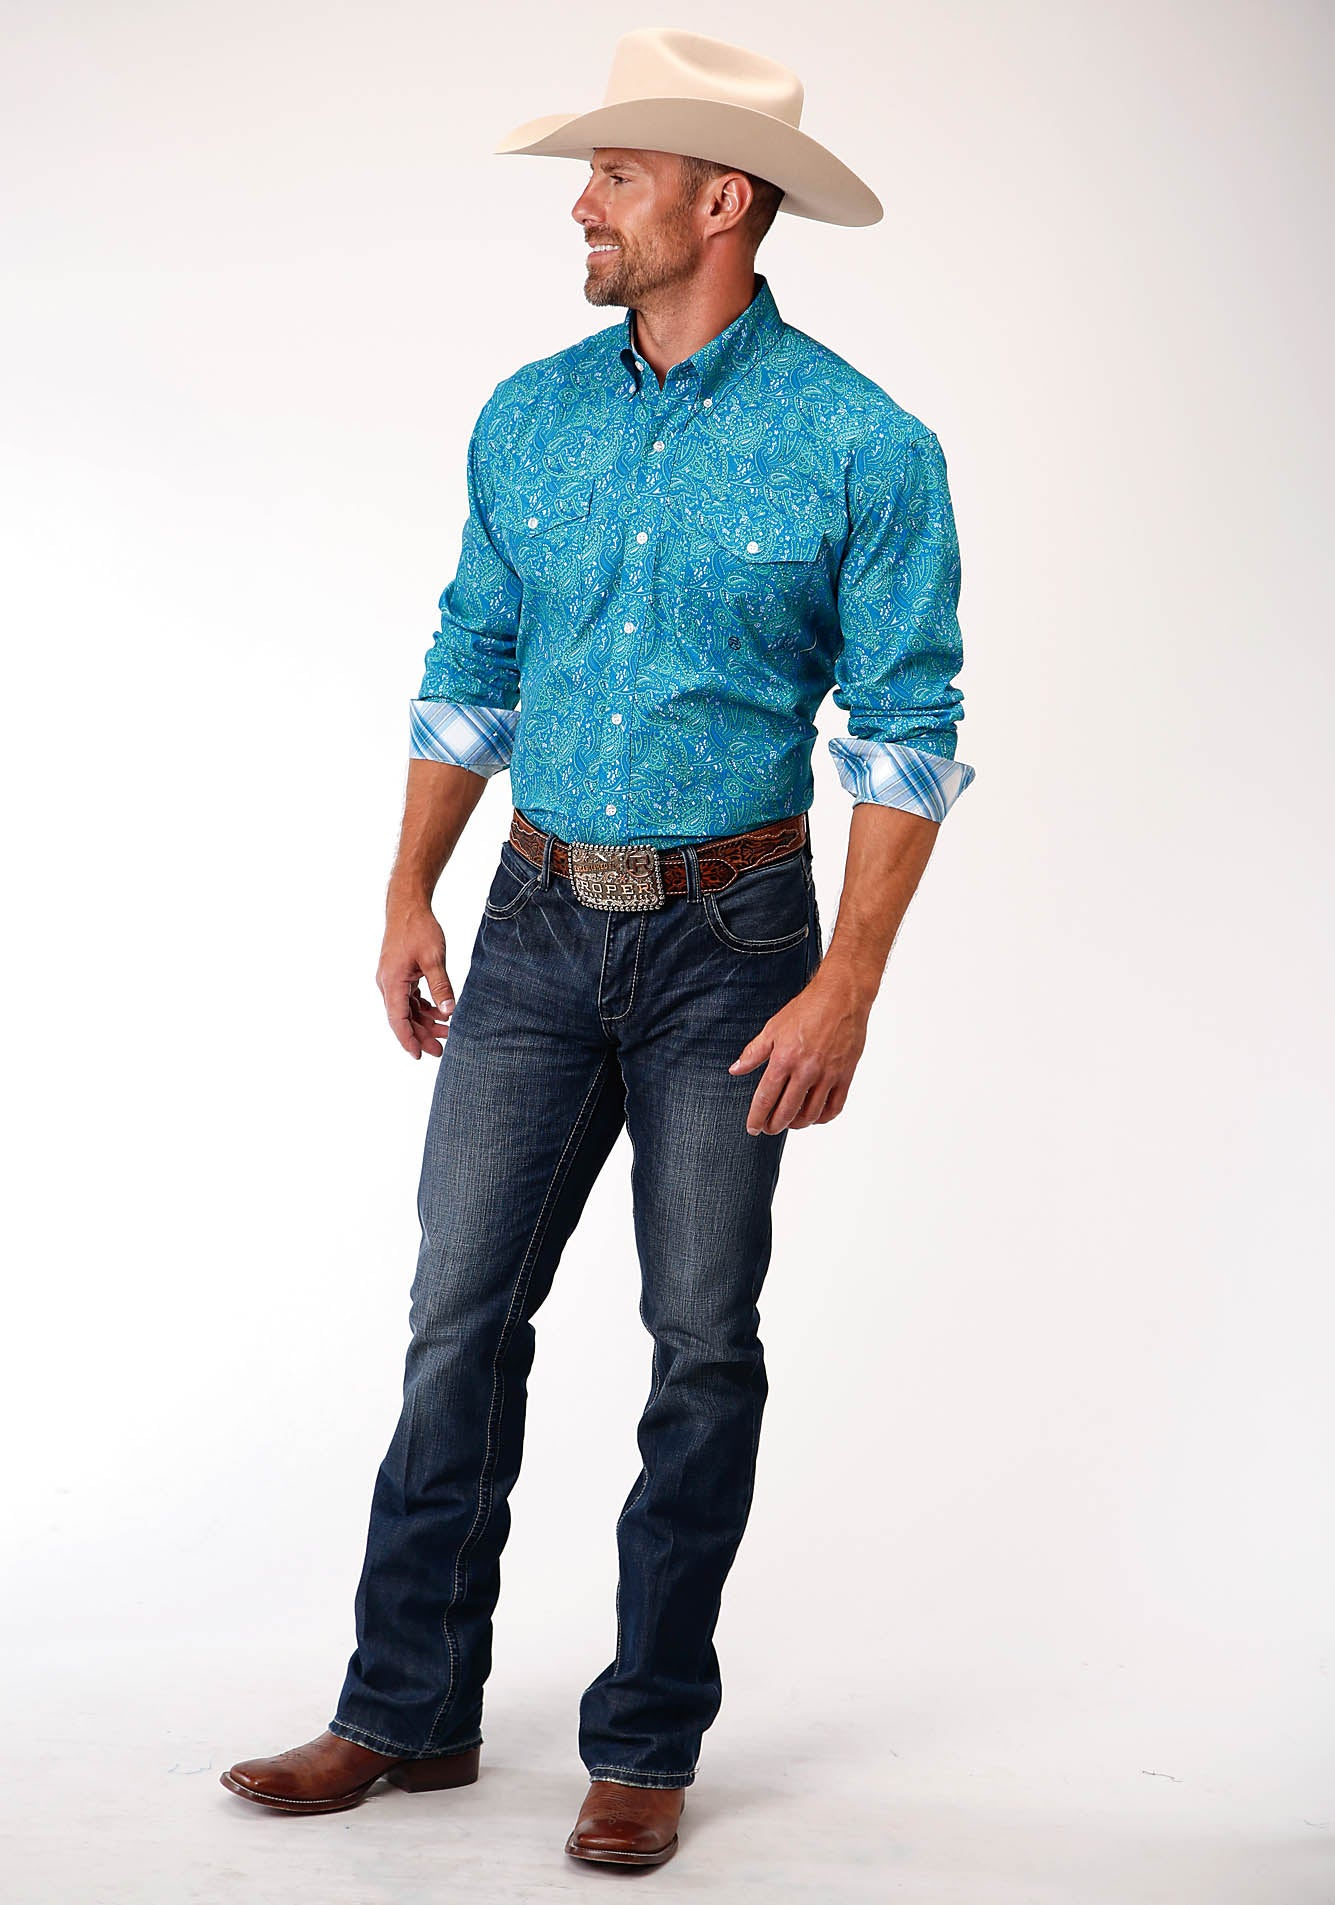 ROPER MENS BLUE 00152 MEADOW PAISLEY MEN'S AMARILLO COLLECTION - BLUE RIDGE LONG SLEEVE